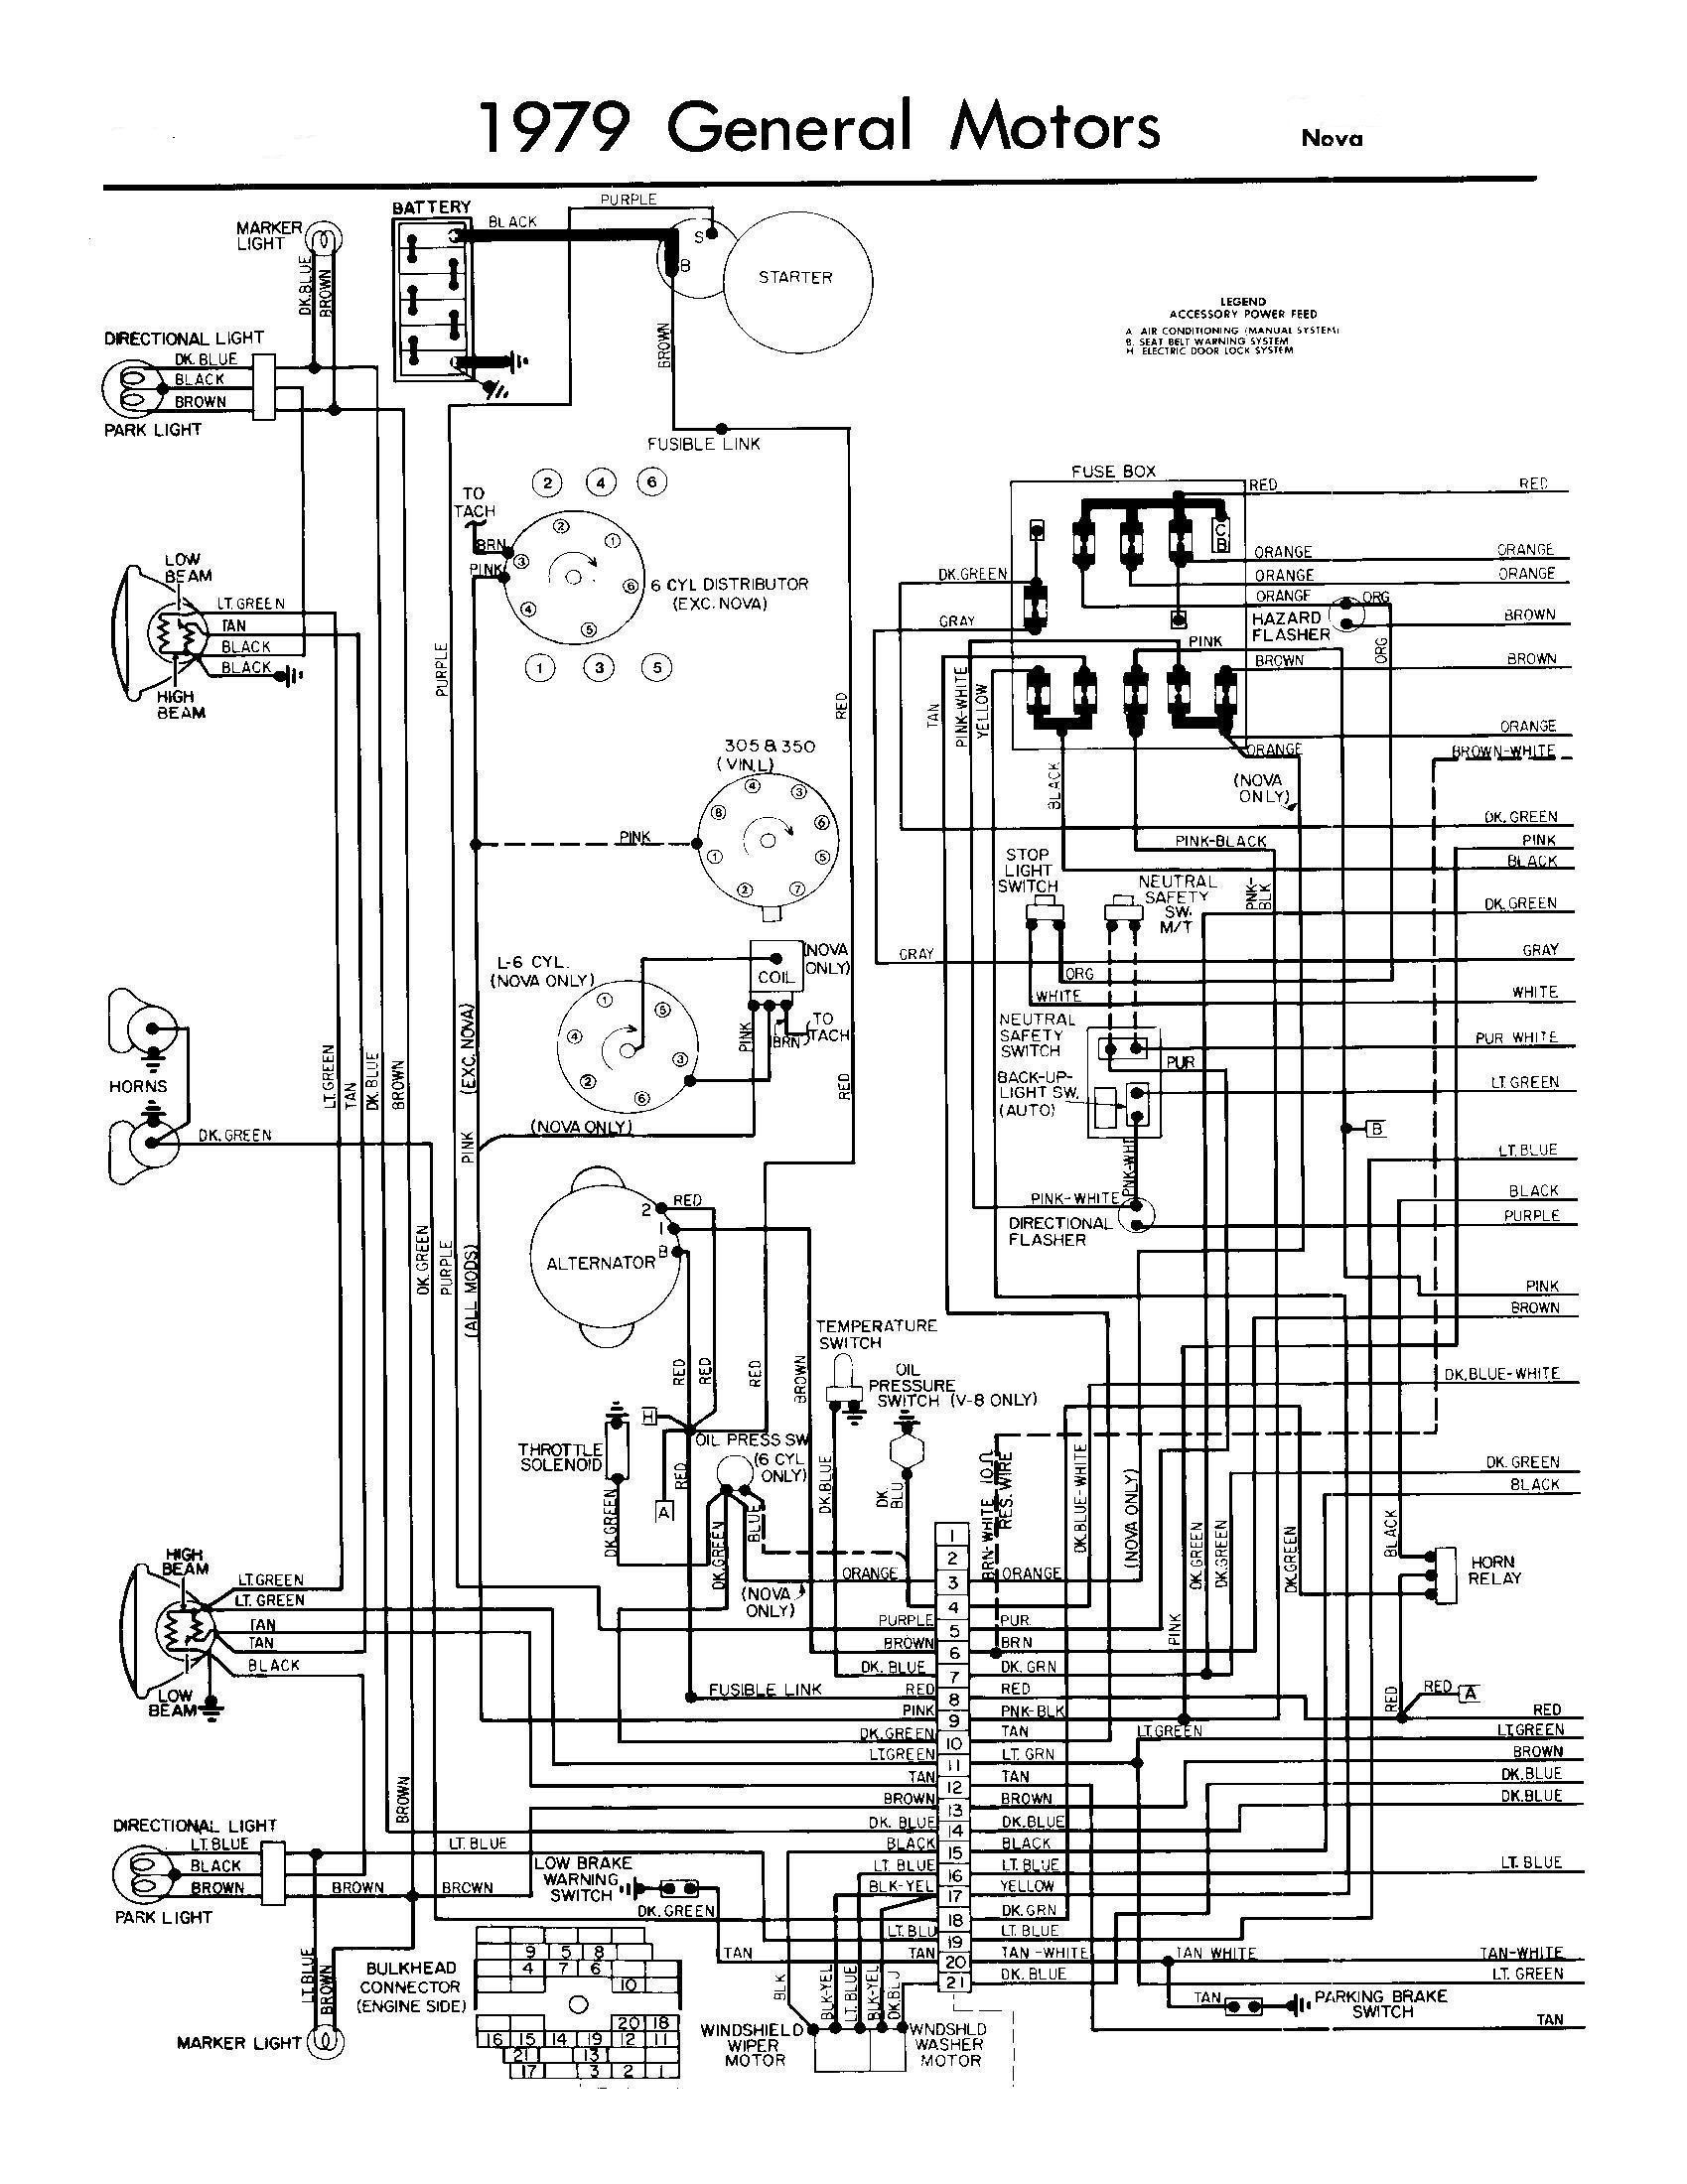 Electric Motor Wiring Tutorial Free Download Diagrams Electrical Schematics Training Get Image About Diagram Types Schema